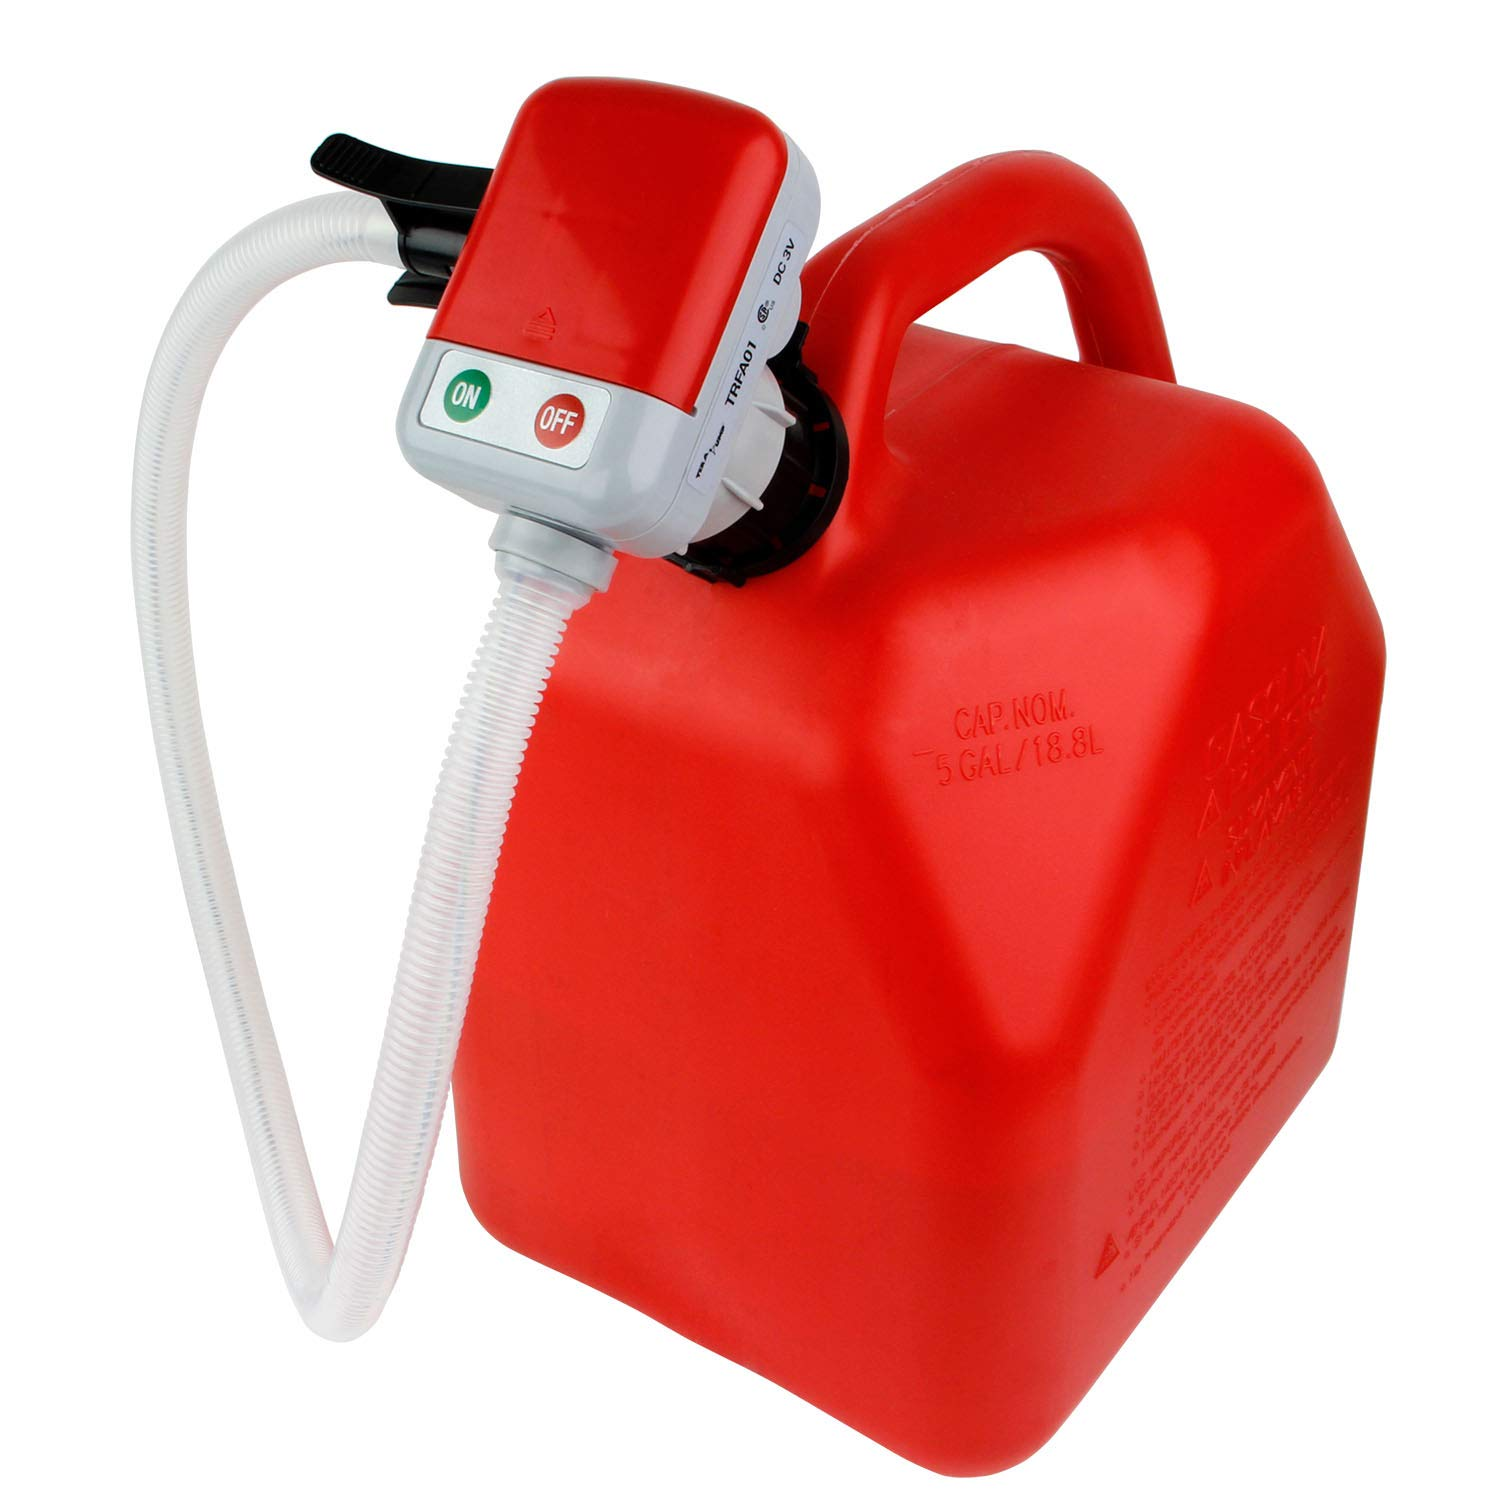 TERA PUMP TRFA01 4 AA Battery Powered Fuel Transfer Pump w/Flexible Intake Hose and No-Spill Auto-Stop Nozzle Attachable to Gas cans and More